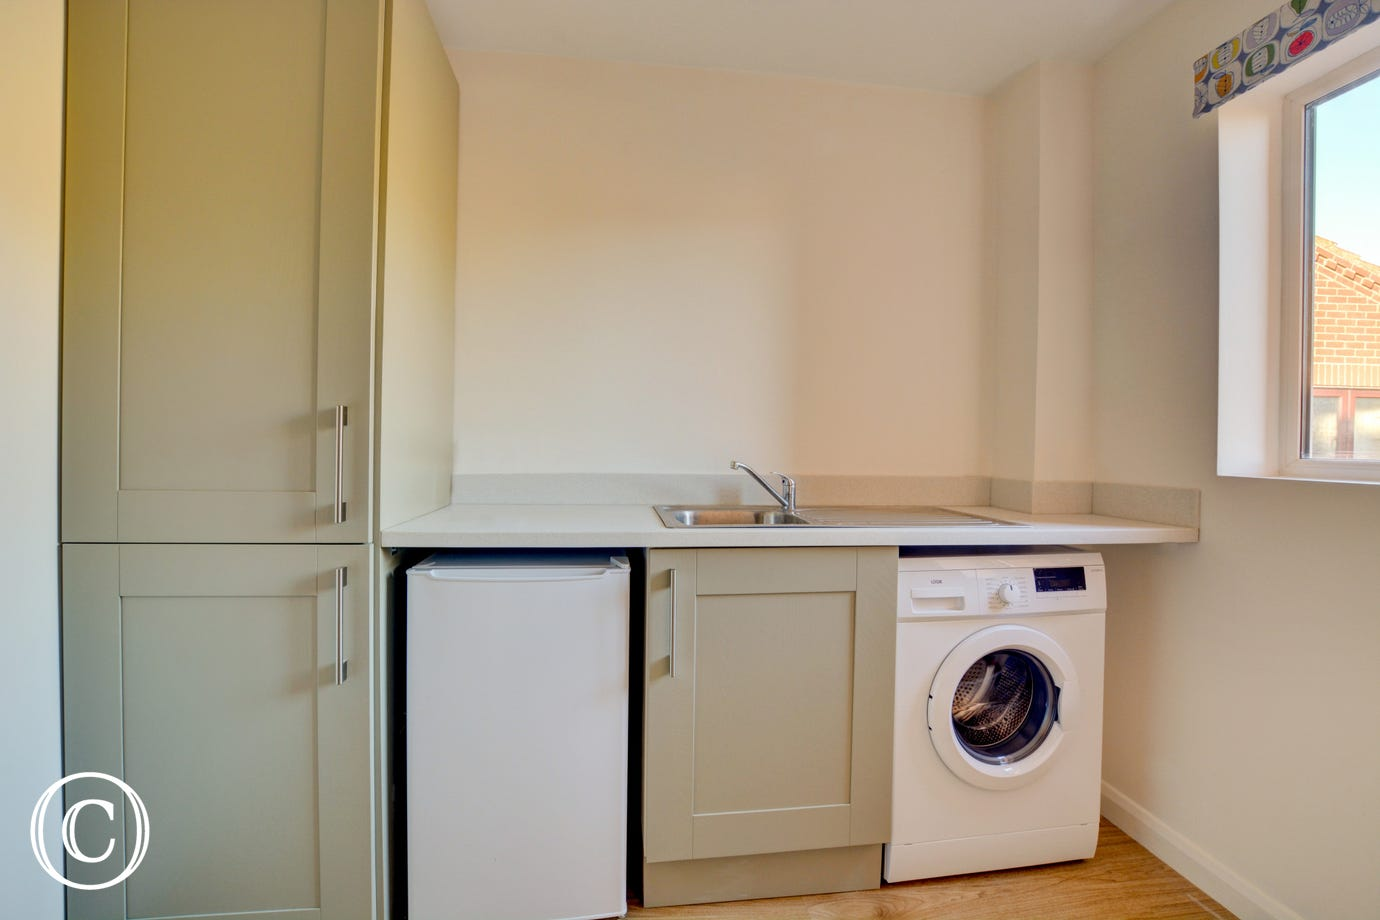 Utility Room showing appliances